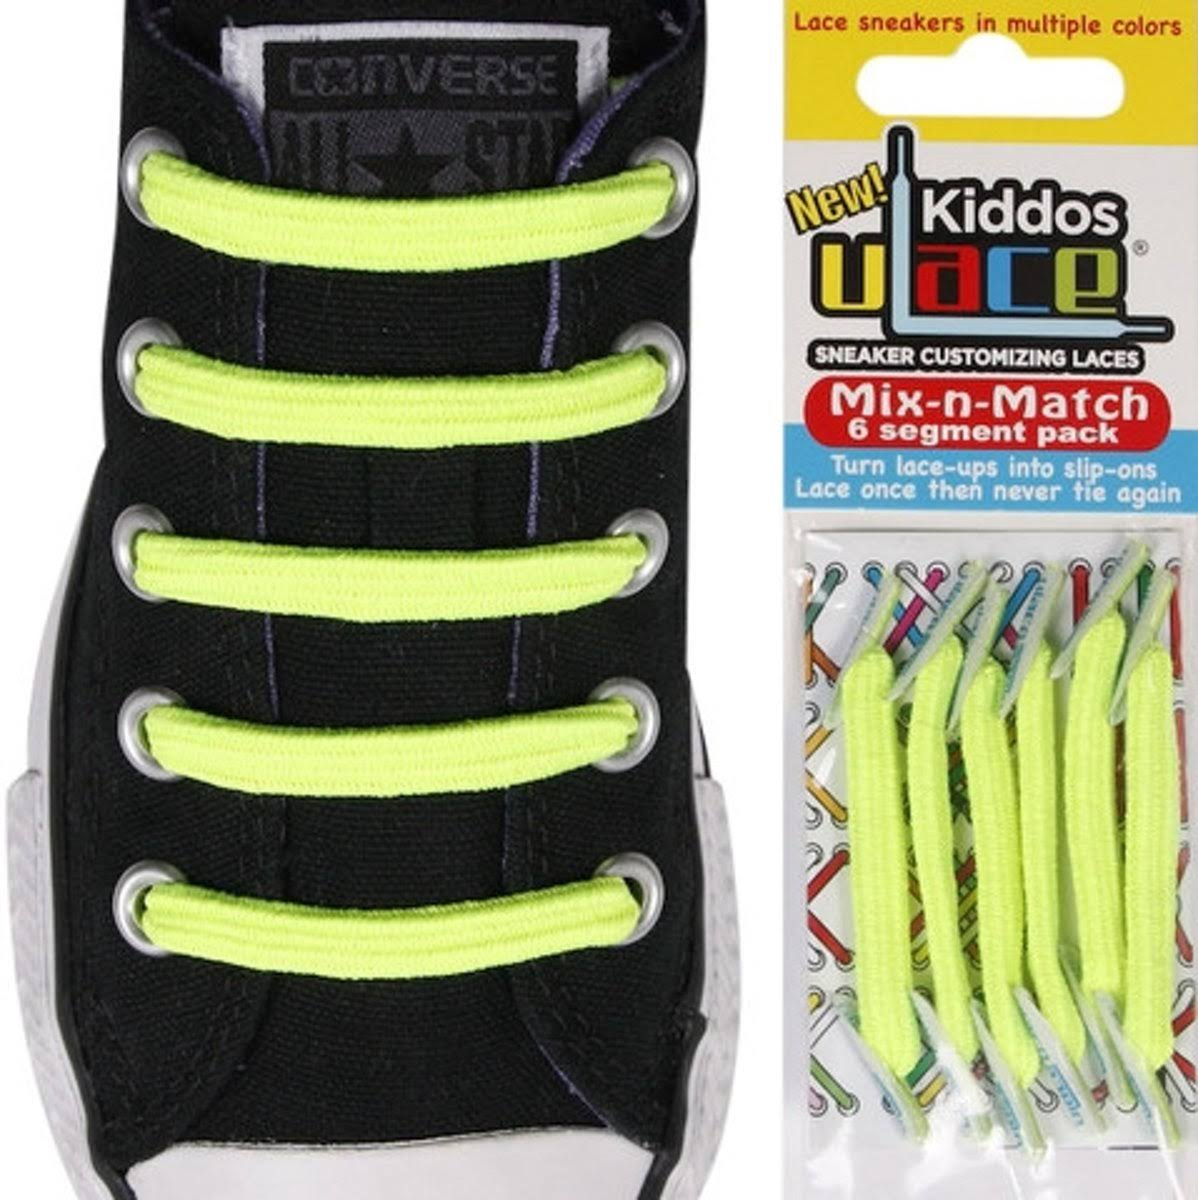 U Lace Kiddos Mix N Match - Neon Yellow